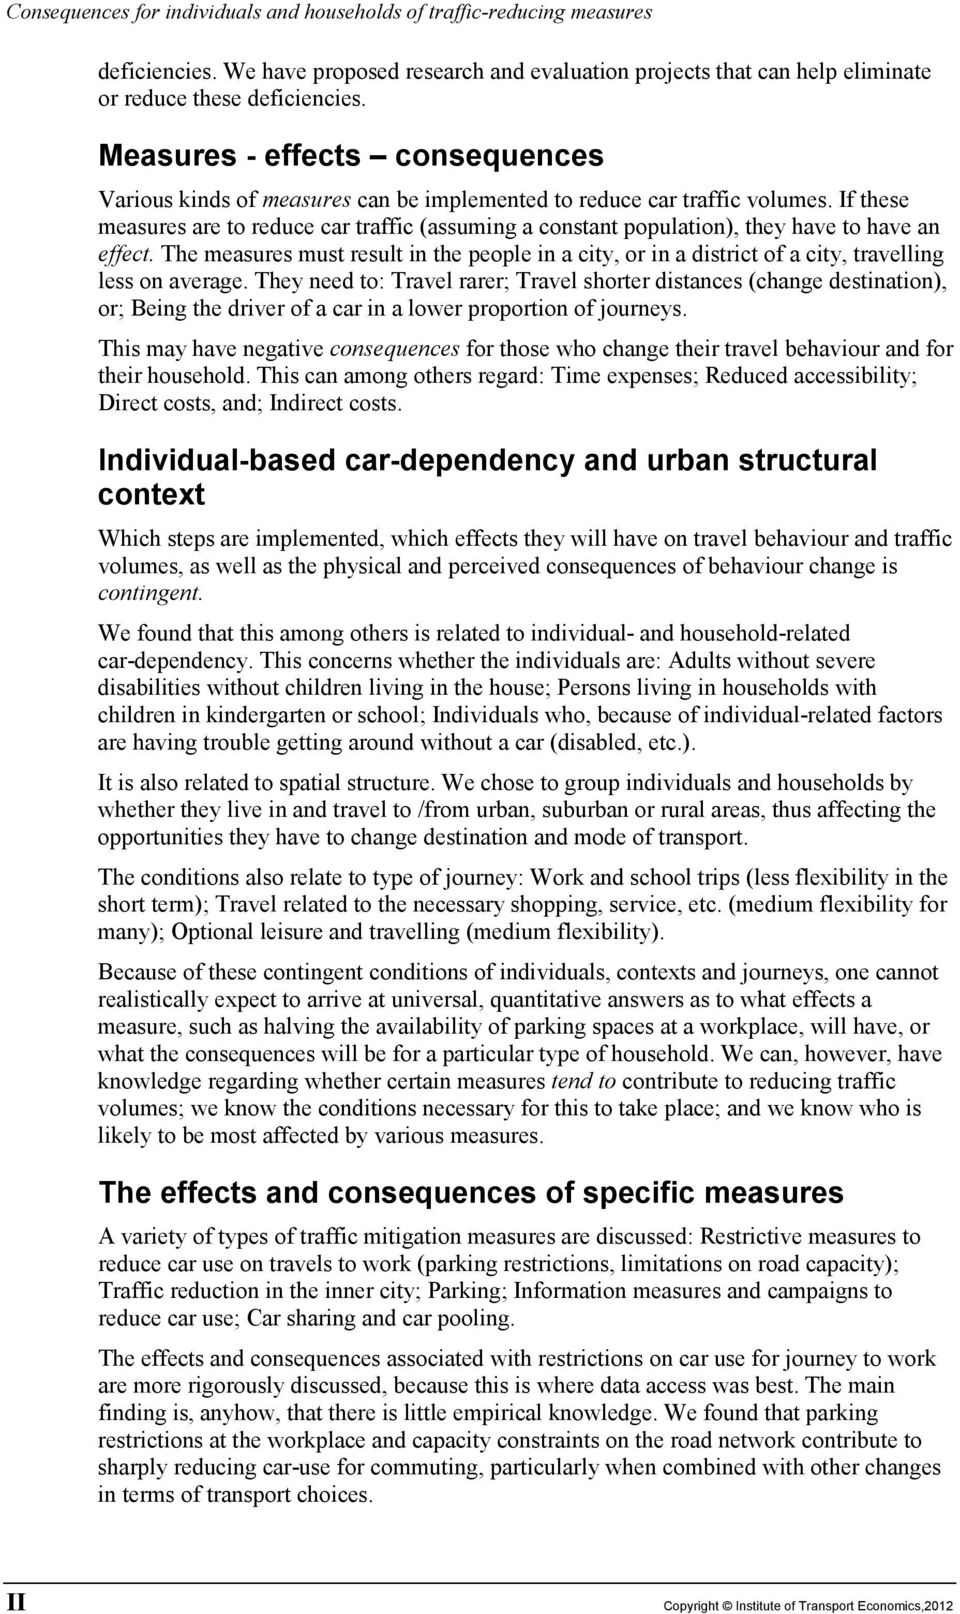 If these measures are to reduce car traffic (assuming a constant population), they have to have an effect.